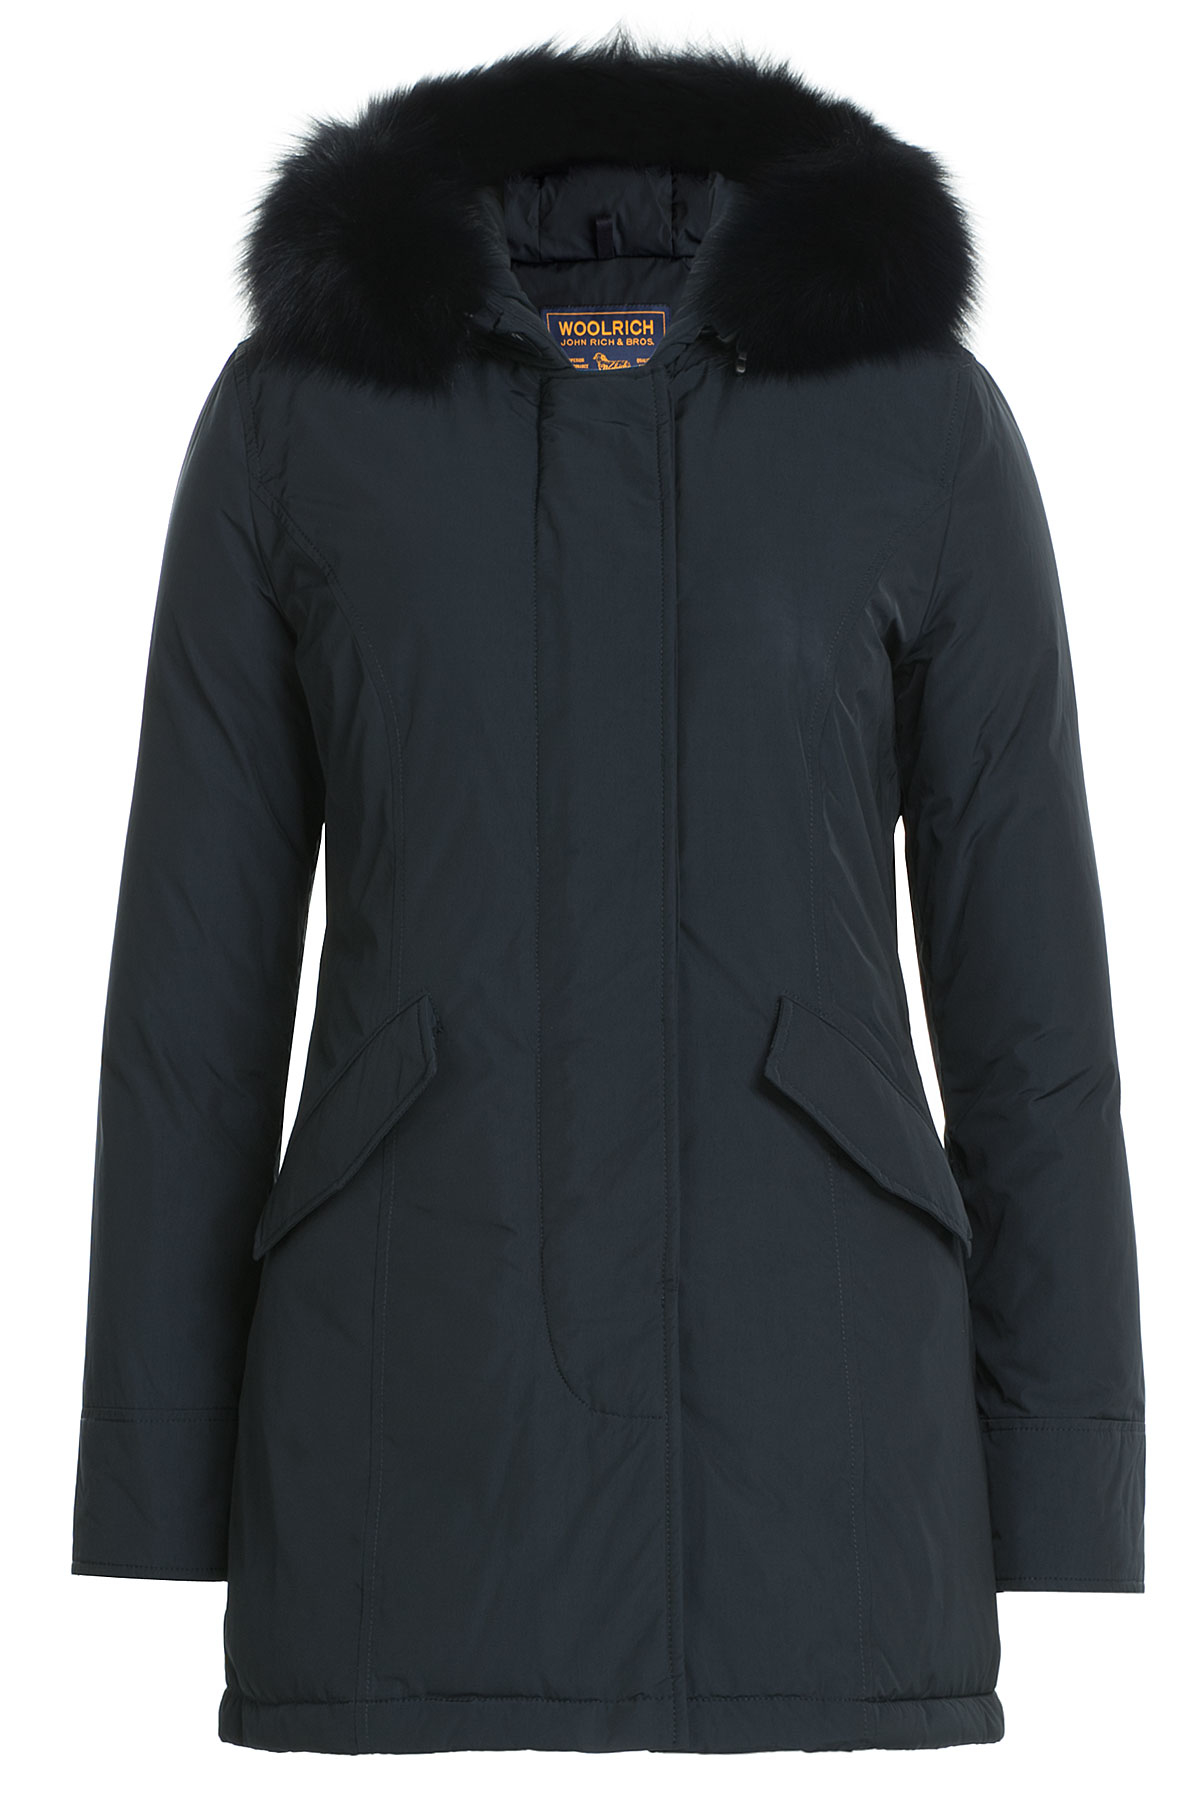 woolrich luxury arctic fox parka with fur trimmed hood blue in blue lyst. Black Bedroom Furniture Sets. Home Design Ideas